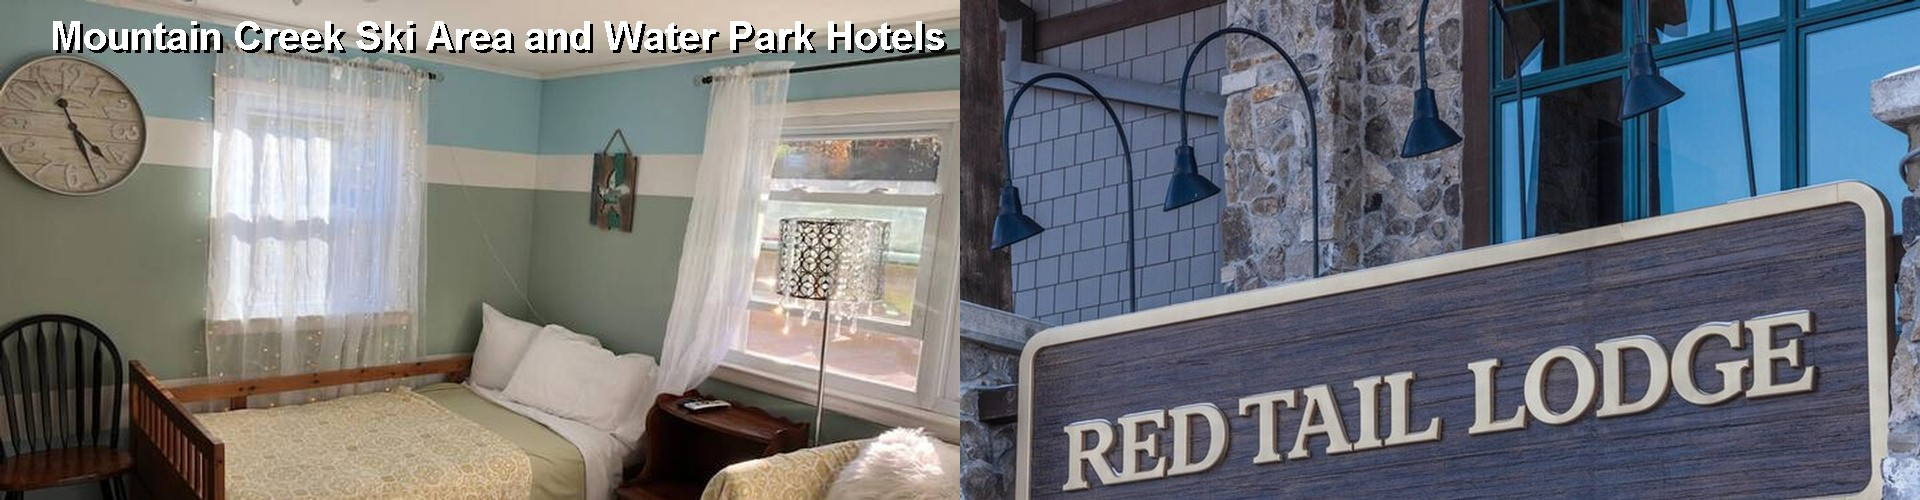 4 Best Hotels Near Mountain Creek Ski Area And Water Park